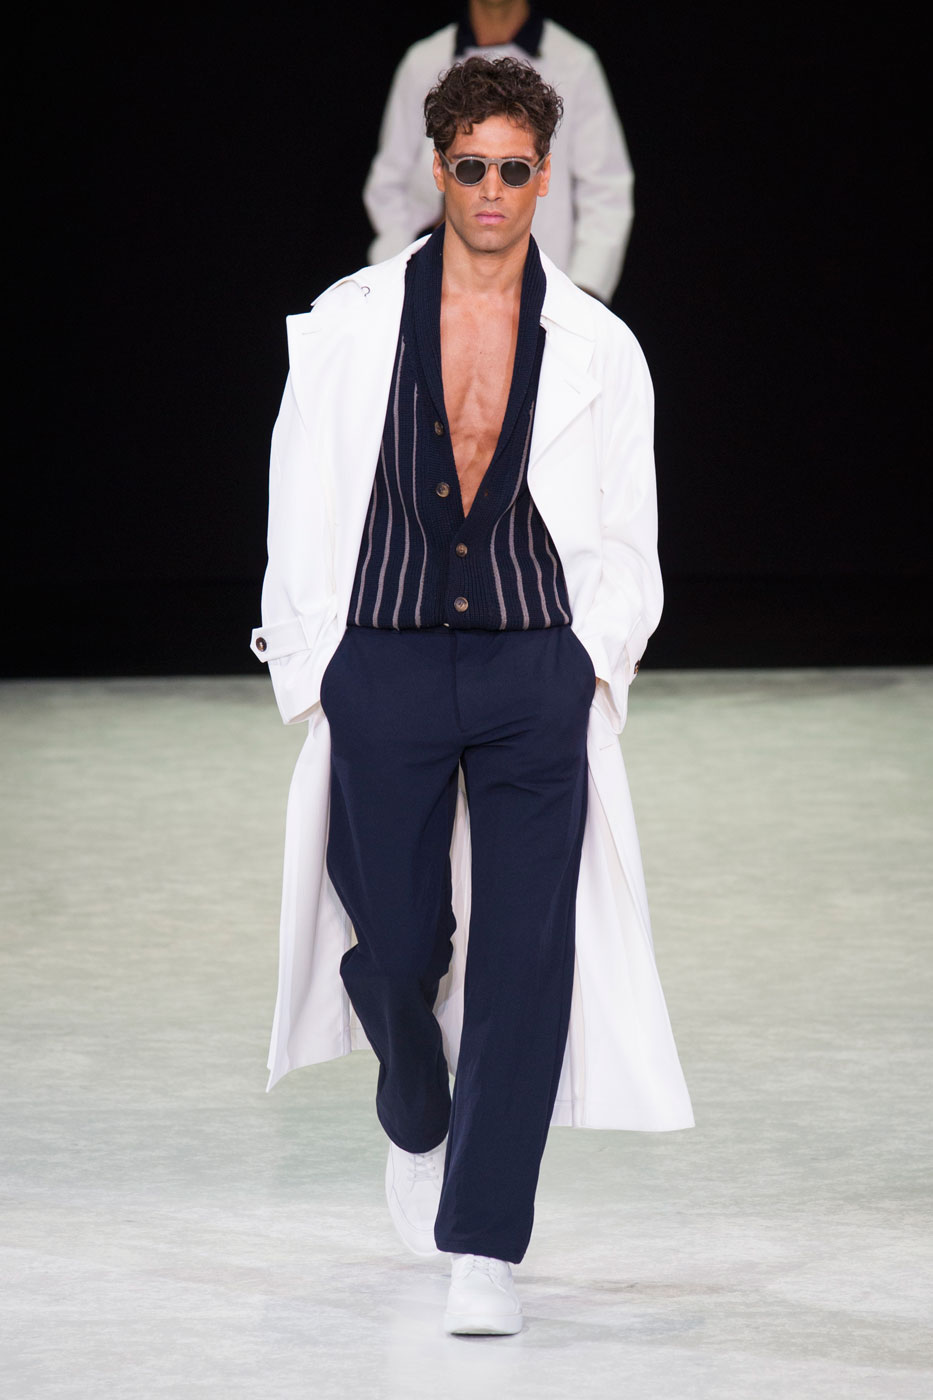 http://theimpression.com/wp-content/uploads/2014/06/giorgio-armani-mens-fashion-runway-show-the-impression-spring-2015-056.jpg